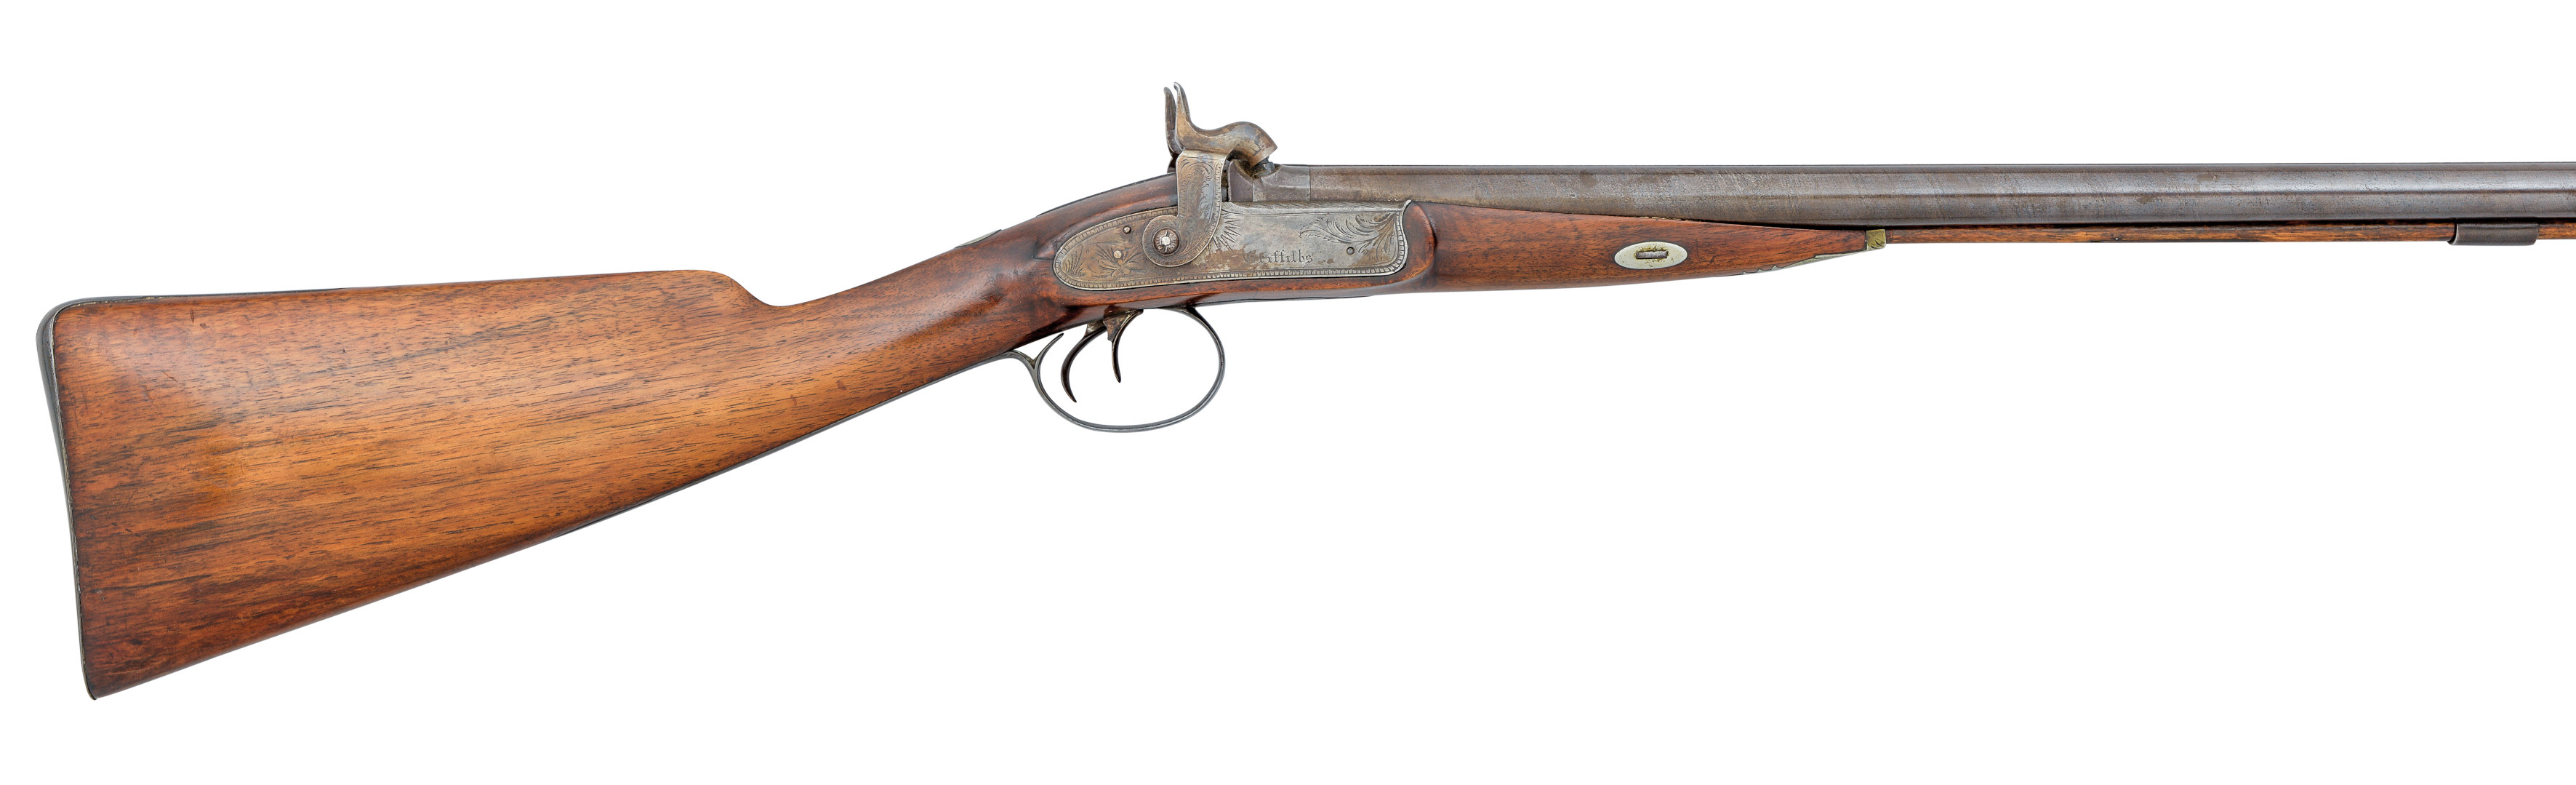 Ⓦ A 20 BORE PERCUSSION SPORTING GUN SIGNED GRIFFITHS^ LONDON^ BIRMINGHAM PROOF MARKS^ CIRCA 1830